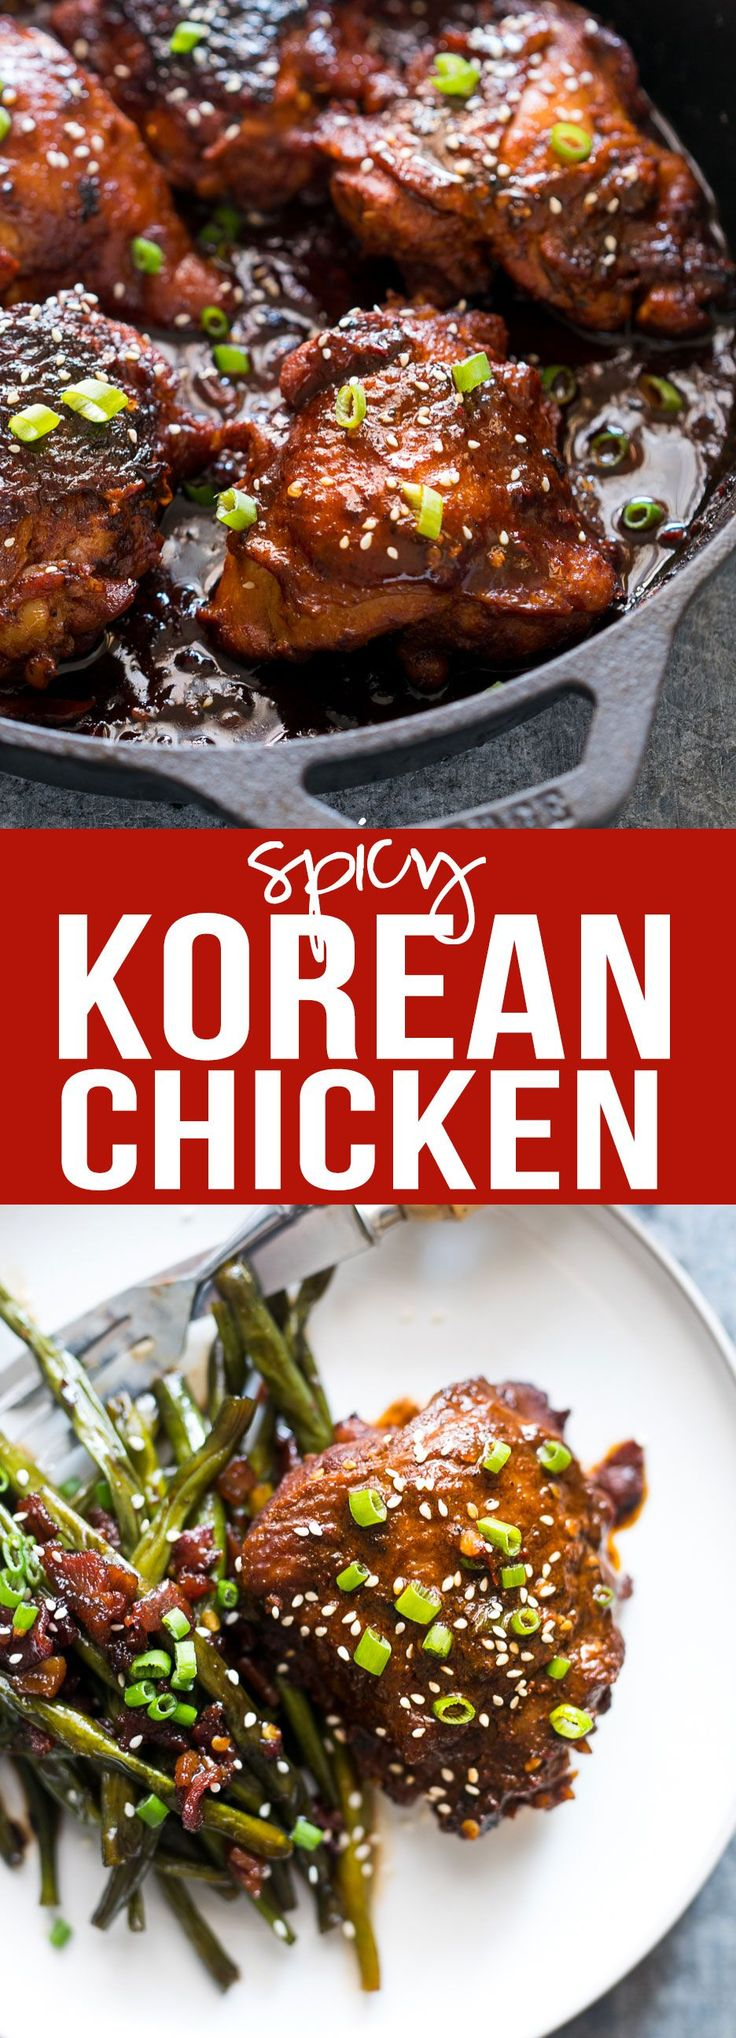 Spicy Korean Chicken Thighs in Gochujang Sauce | Sweet Spicy Marinade | Easy Cast Iron Recipe | Crispy Juicy Chicken | Serve with noodles or fried rice | Fast Recipe | Lunch and Dinner | BBQ